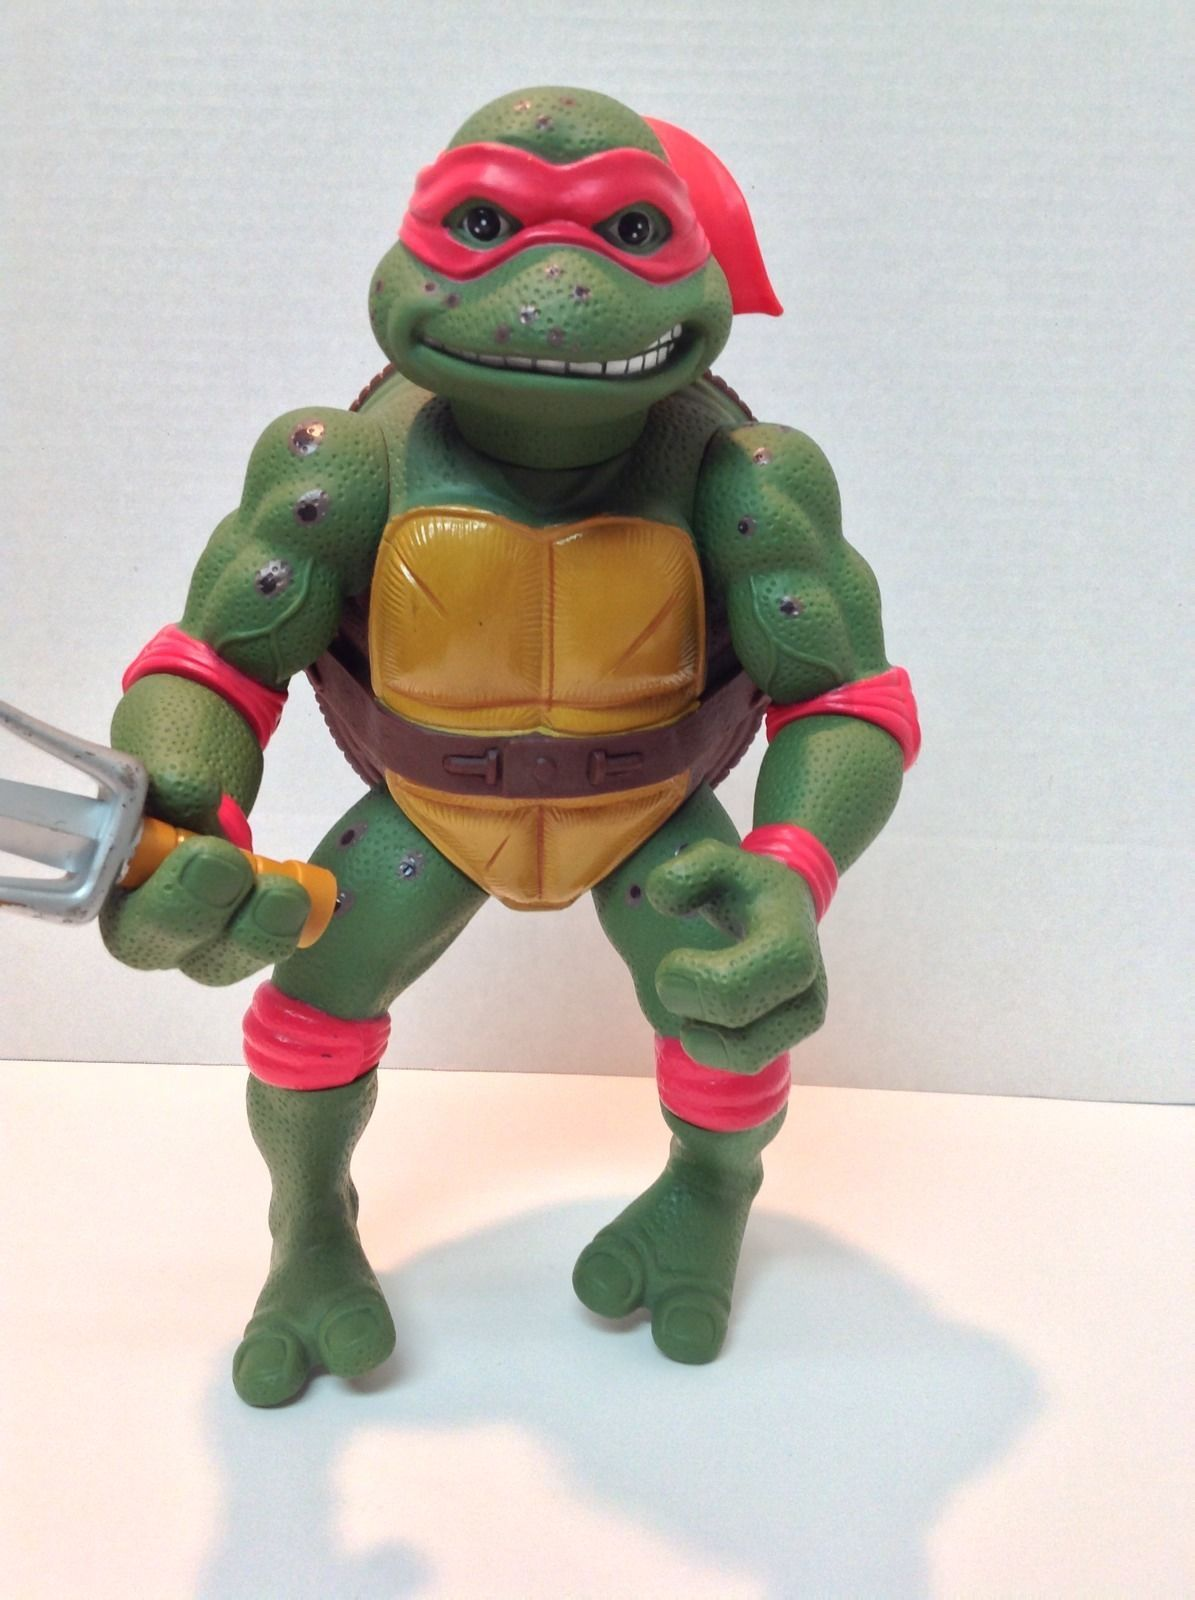 Giant 1992 Teenage Mutant Ninja Turtles Raphael Movie Mirage Studios 14""